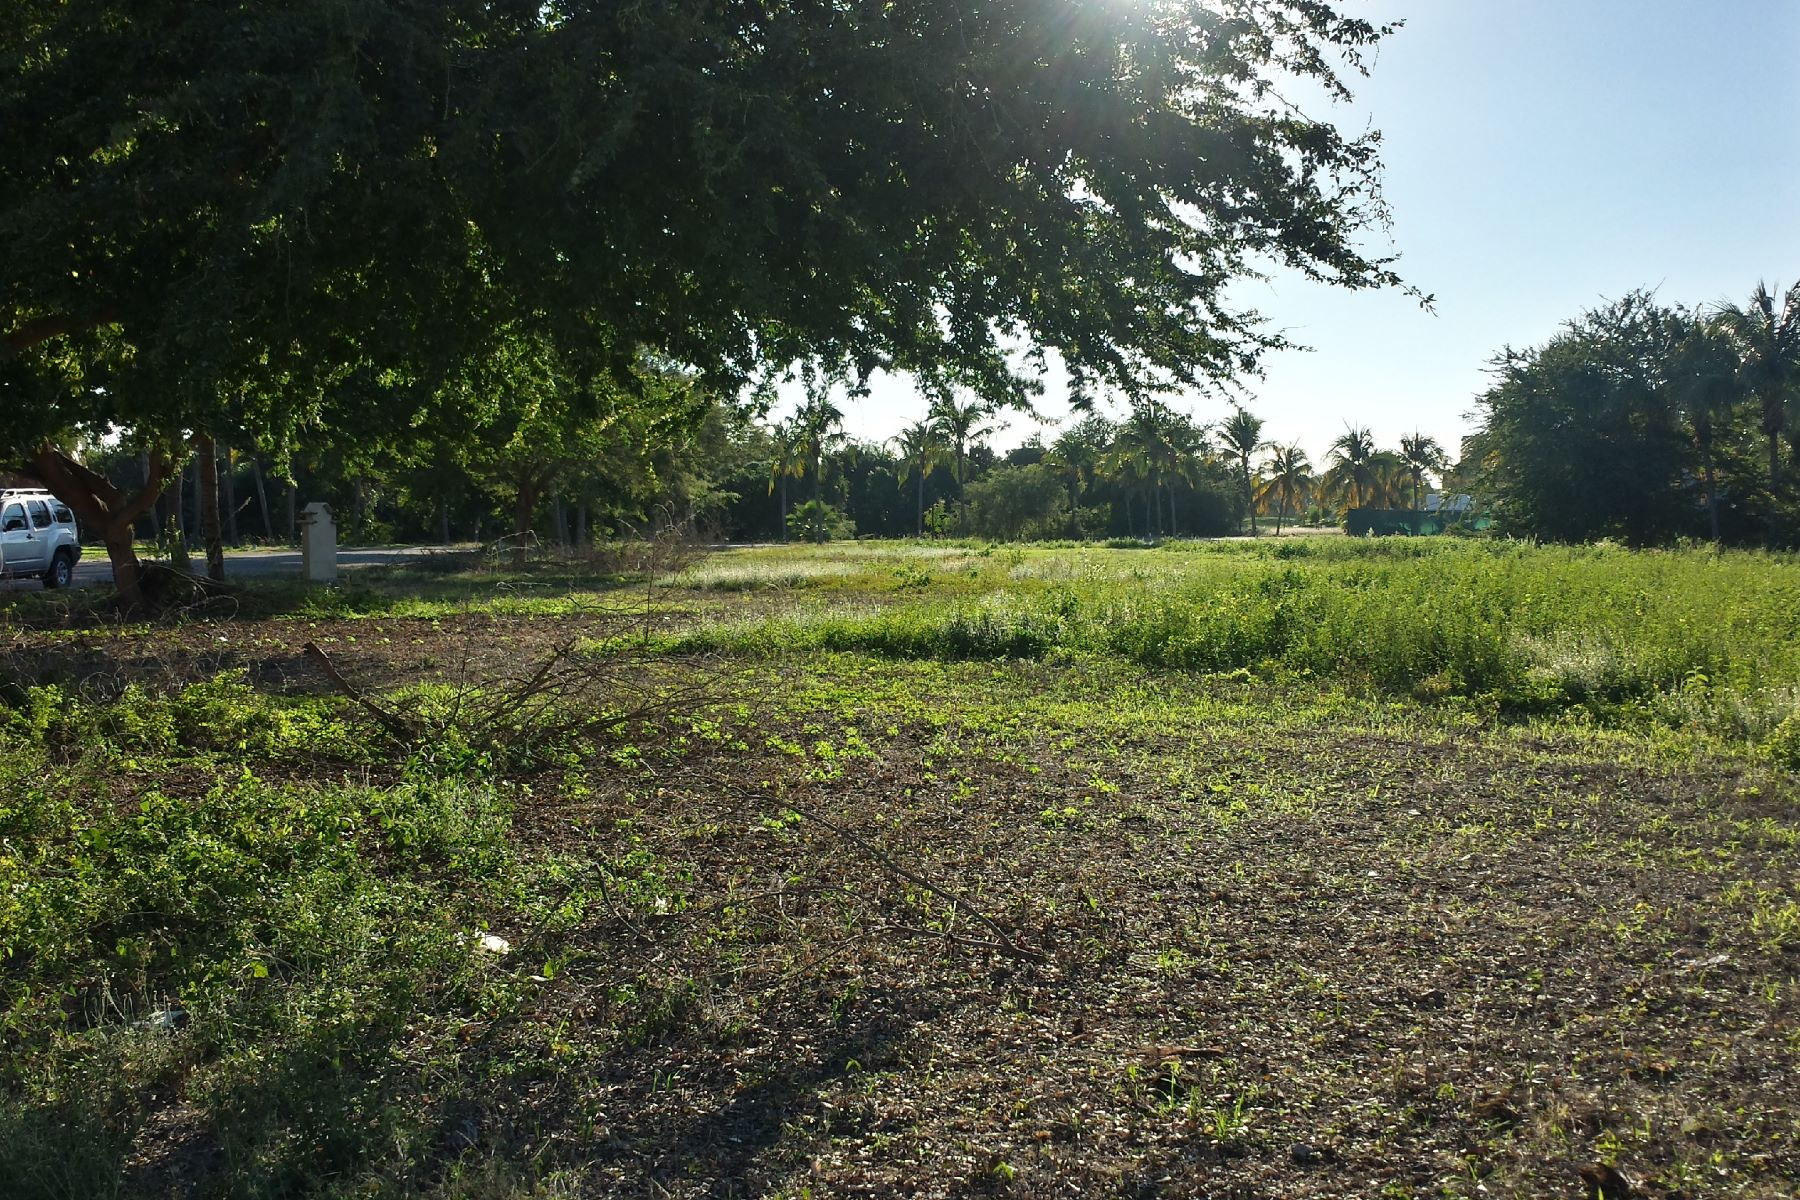 Land for Sale at Residential Lot, 18 Isla Guacamayas, El Tigre Golf Course, Nuevo Vallarta Lote 18 Isla Guacamaya El Tigre Nuevo Vallarta, 63735 Mexico